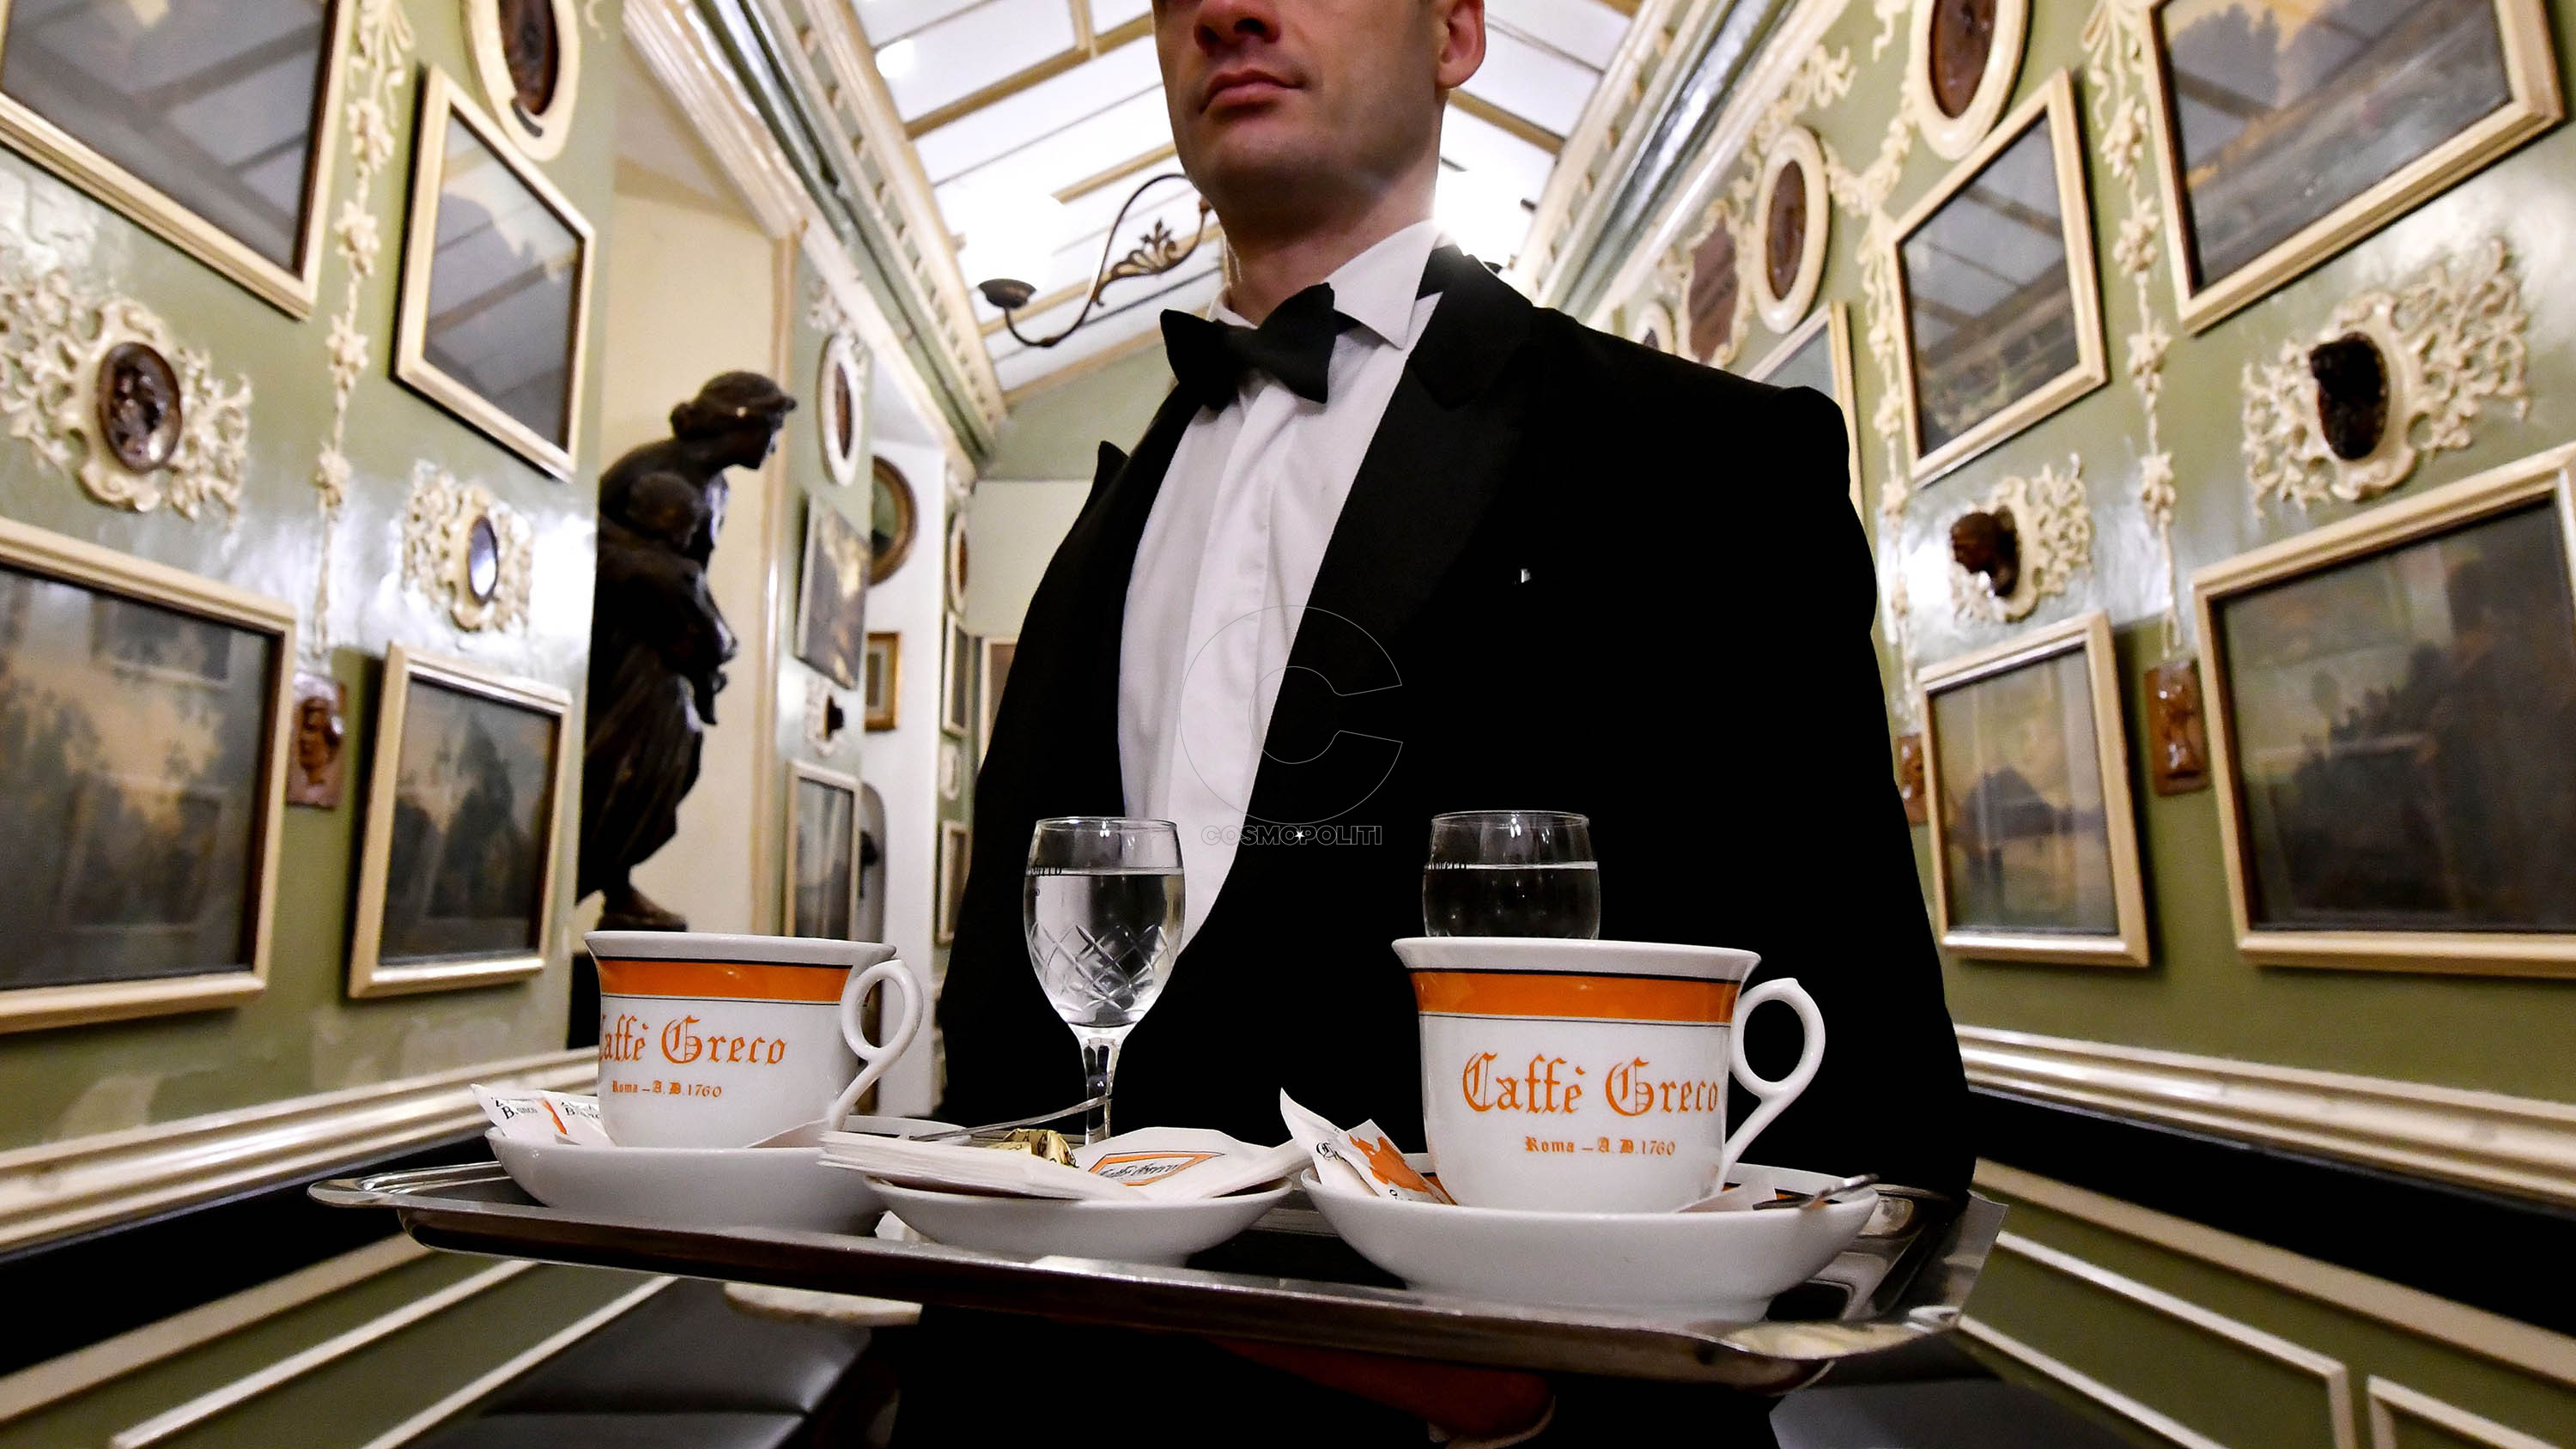 A waiter carries coffees in the Antico Caffe Greco, in Via dei Condotti, central Rome on January 15, 2018. The Caffe Greco, founded in 1760 by Greek Nicola della Maddalena, is the second oldest coffee in Italy after the Caffe Florian in Venice.